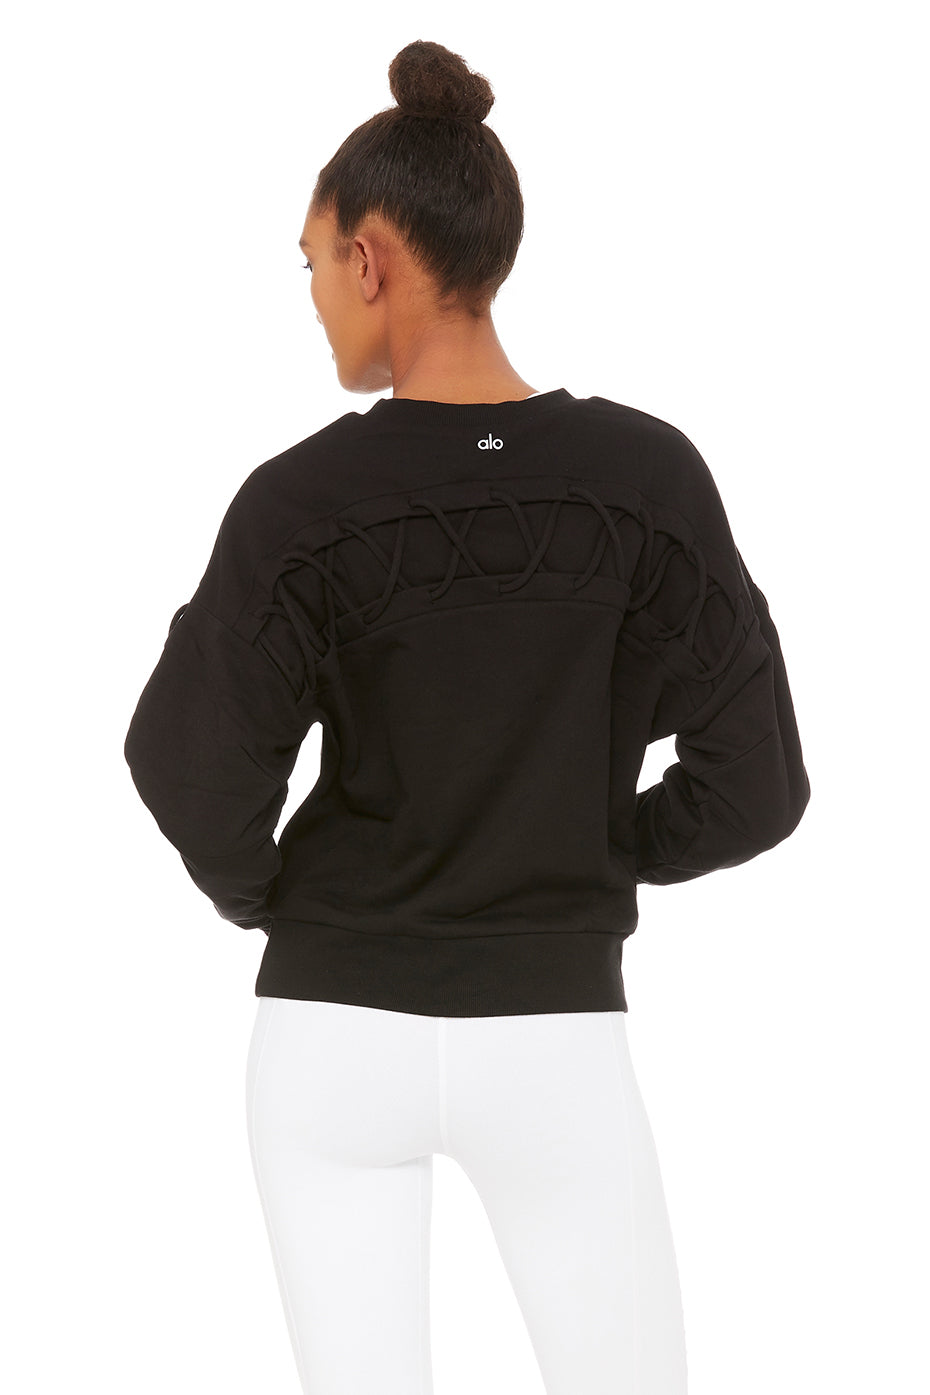 Hook-Up Long Sleeve Top